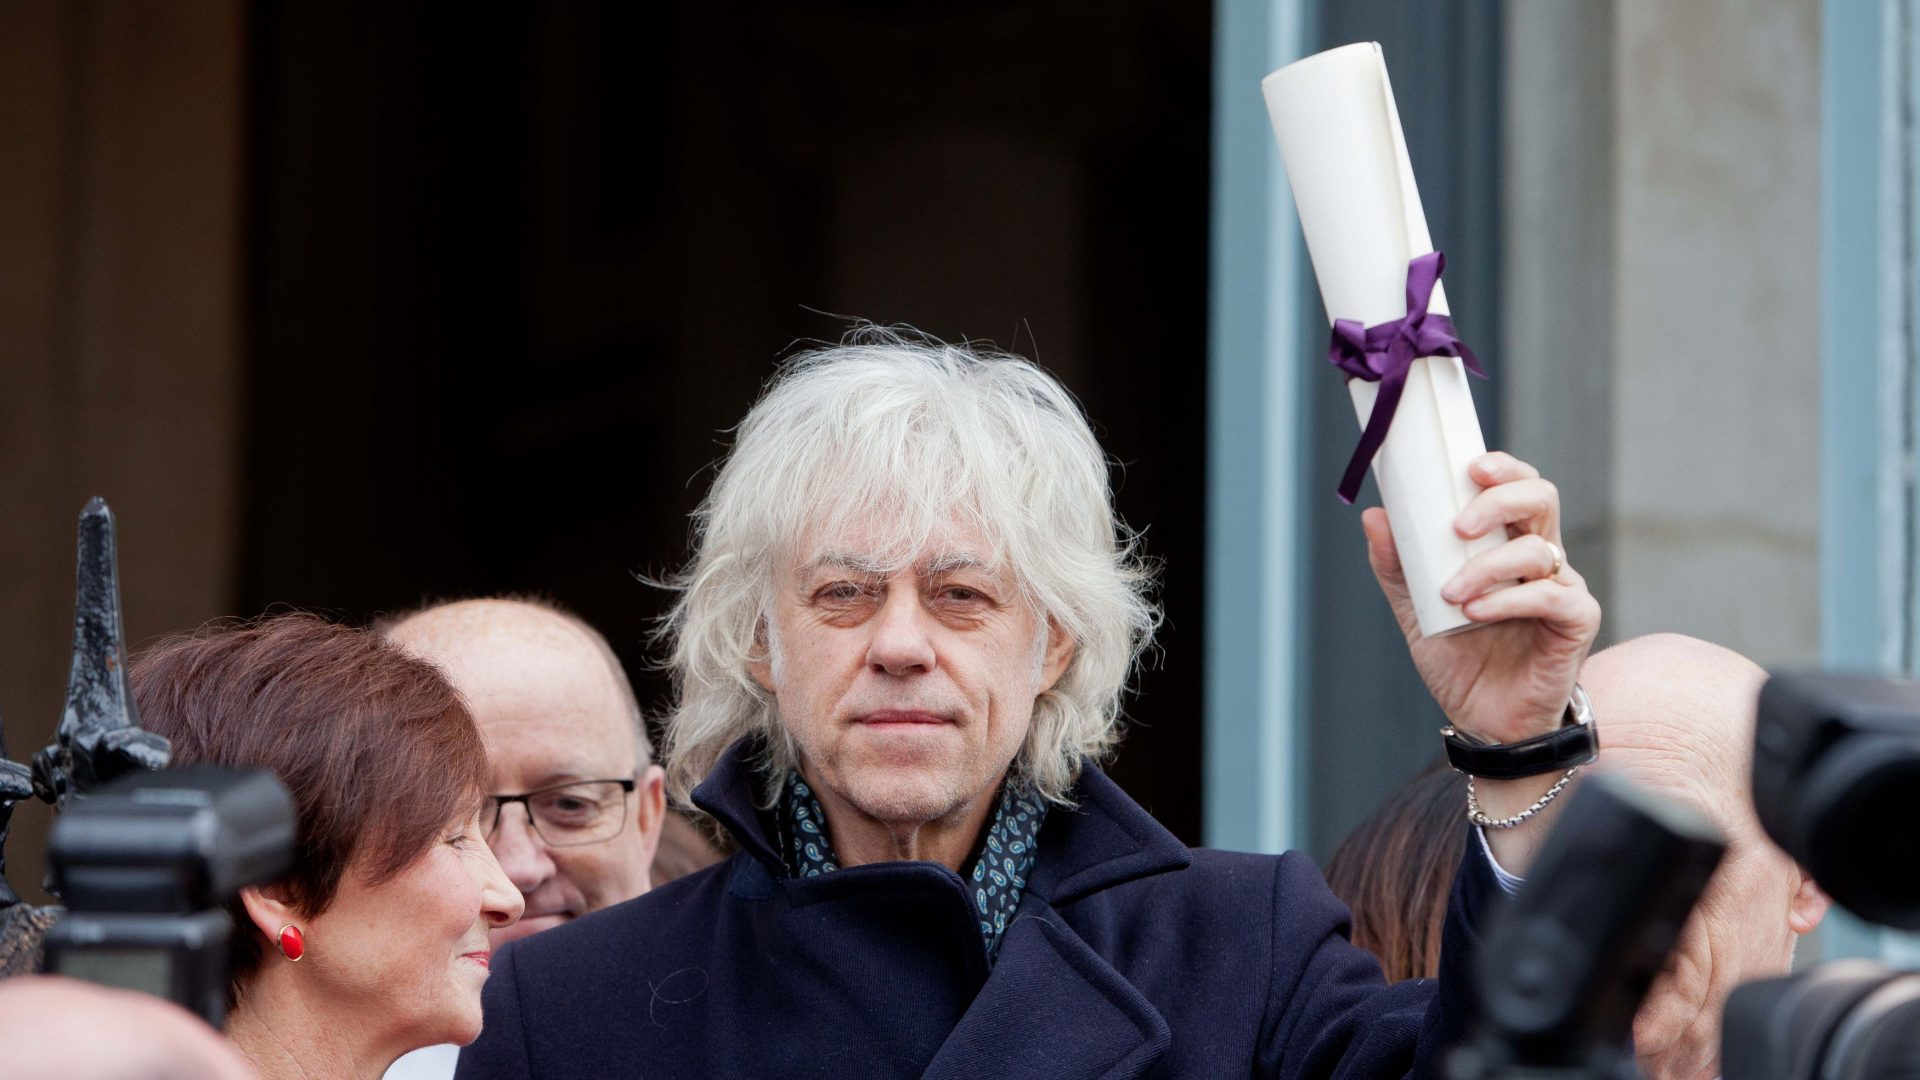 Bob Geldof: Dubliners and Ireland 'duped' by Aung San Suu Kyi